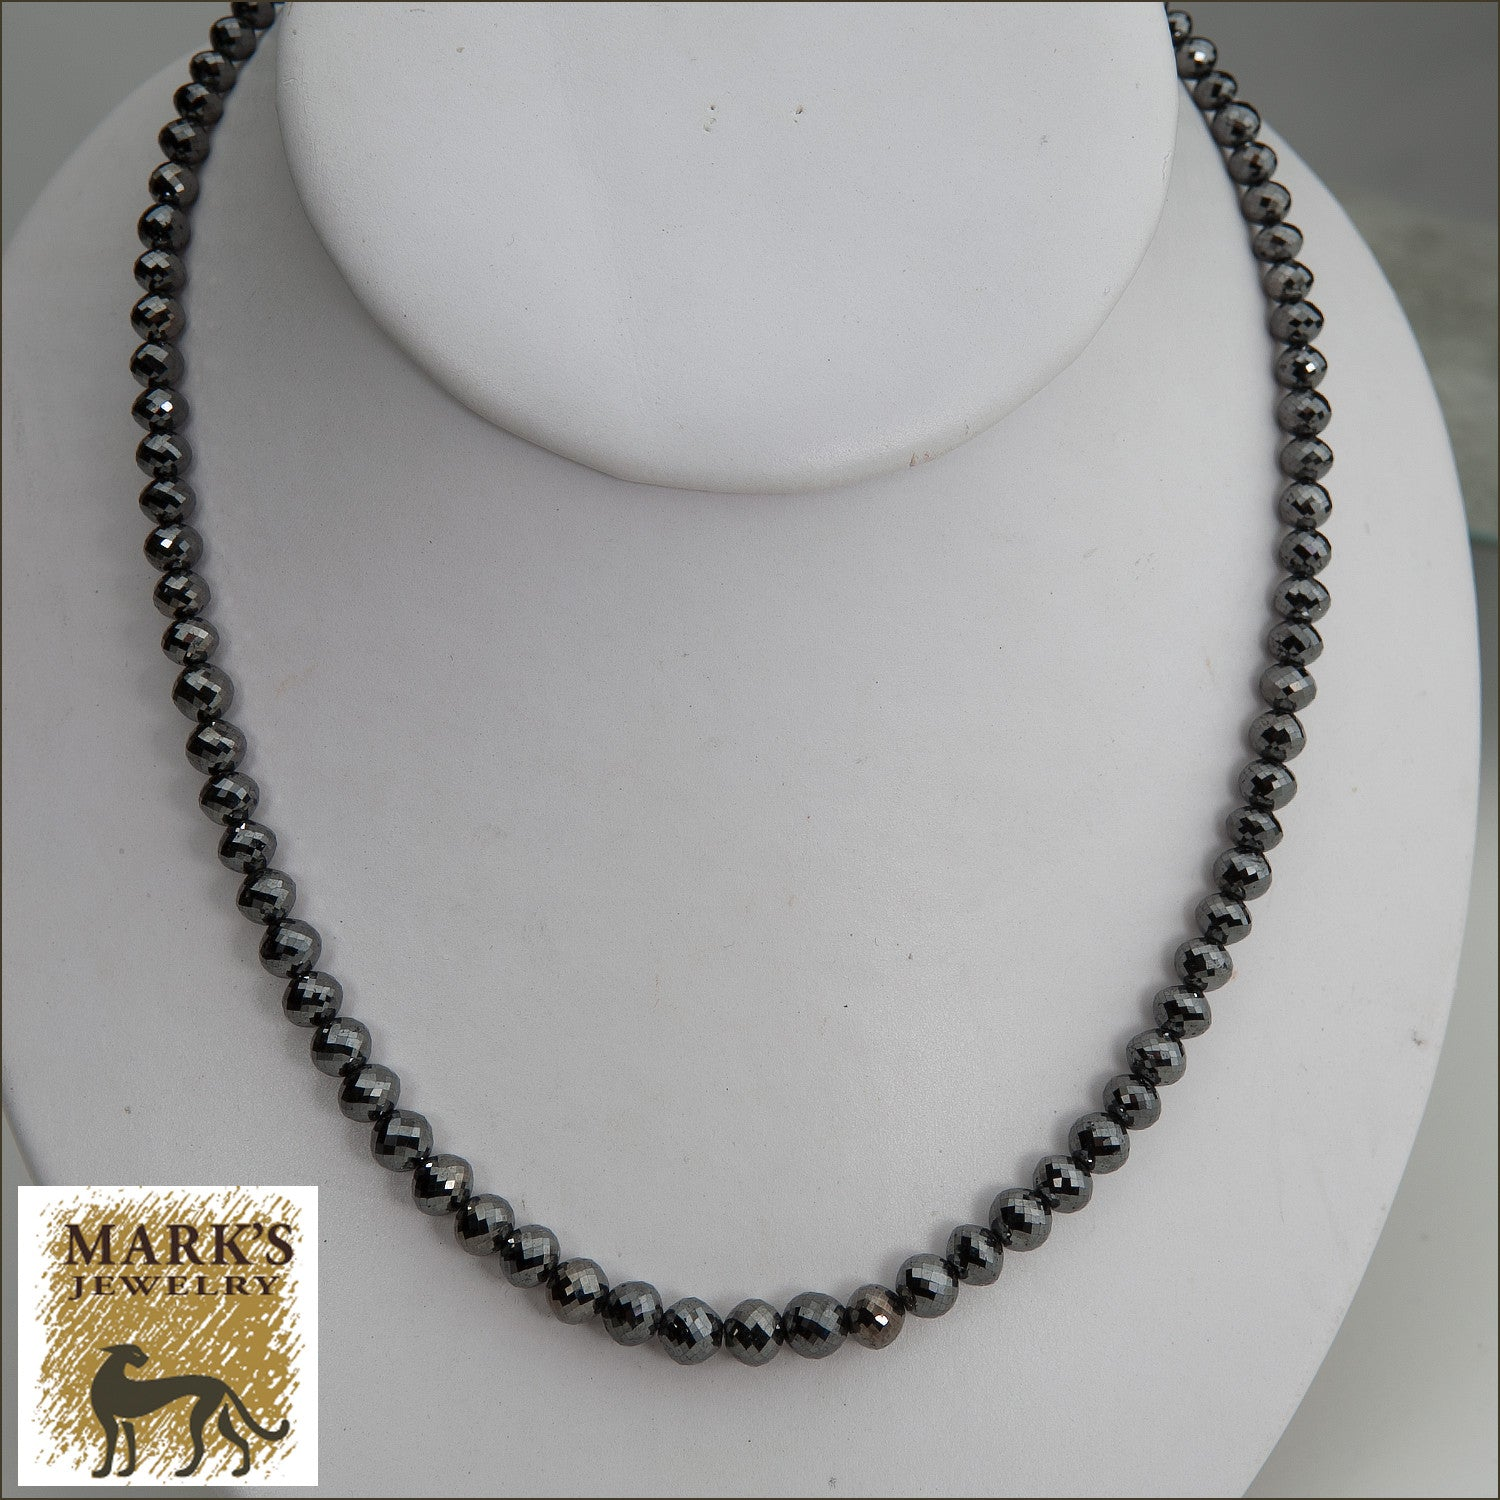 necklaces jewelry beads necklace grinstein diamond black format design